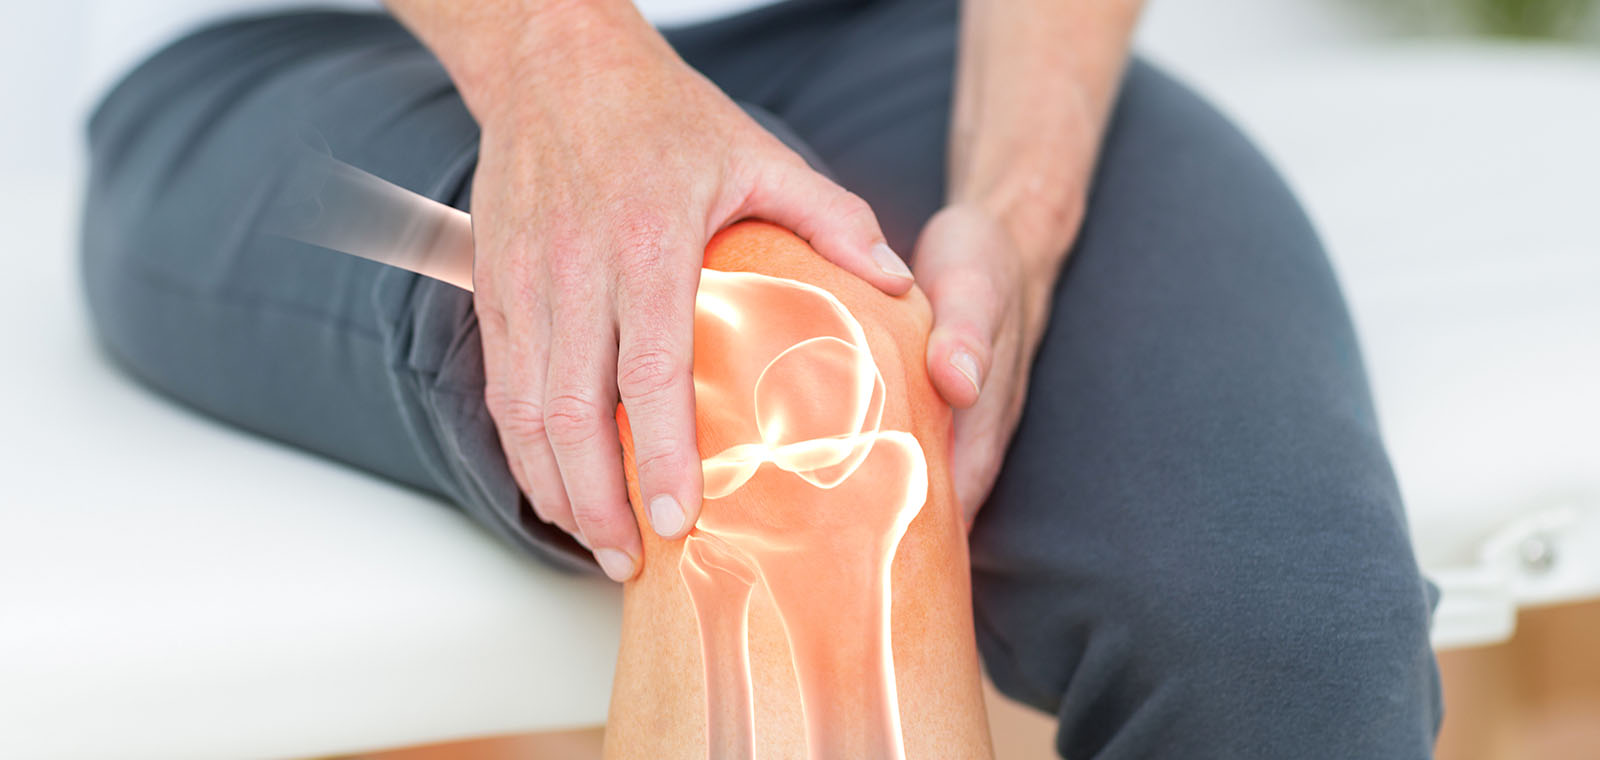 Digitally composite image of man suffering with knee pain